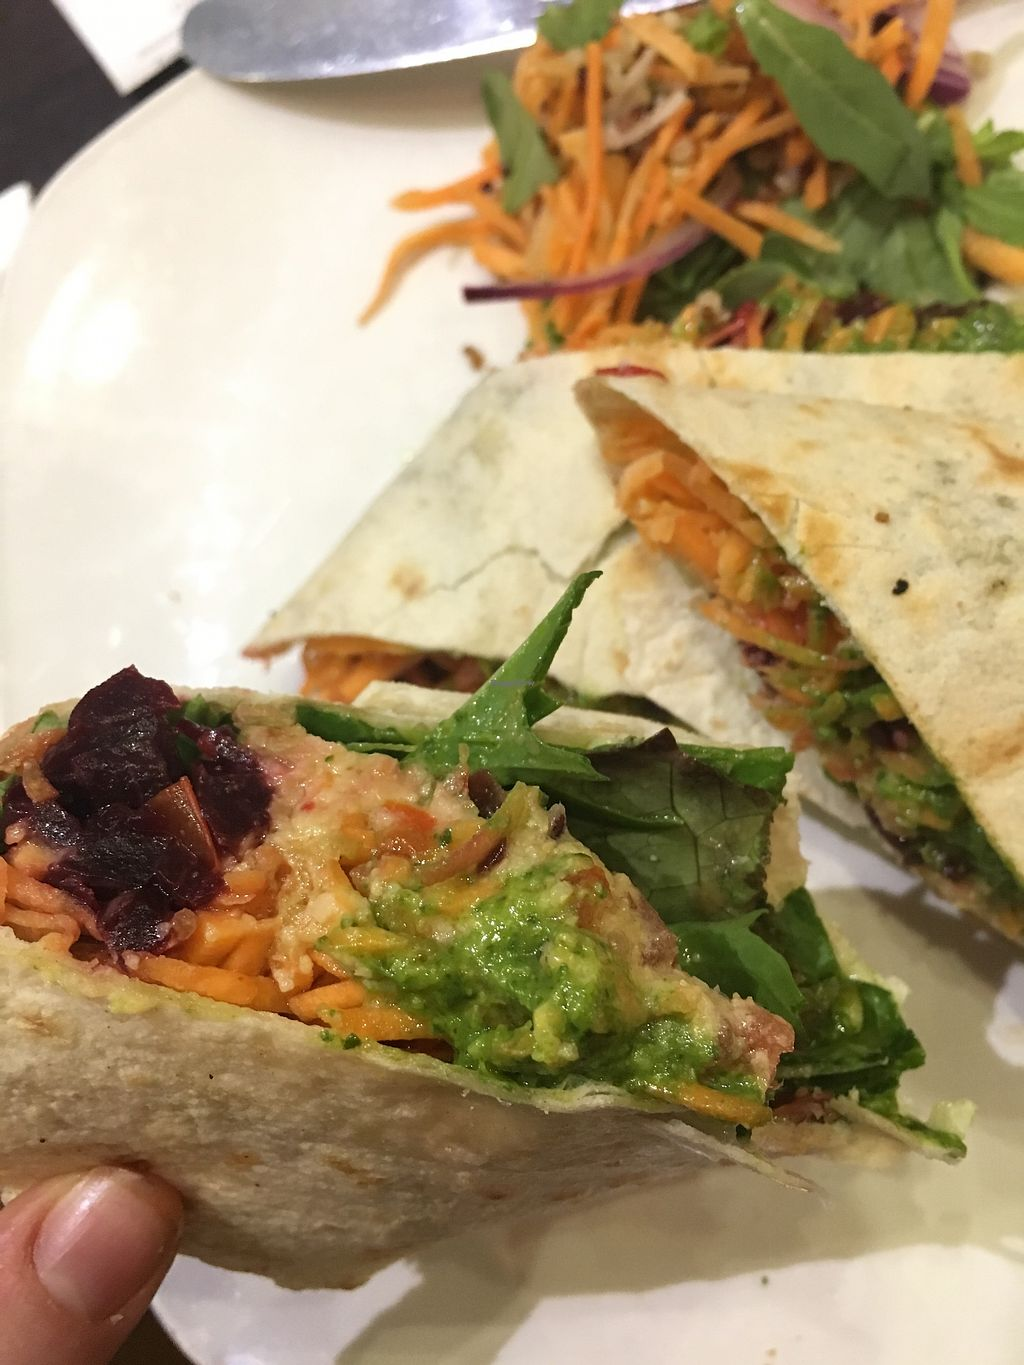 """Photo of Pascal Coffee House - Edward Square  by <a href=""""/members/profile/AvrilTkd"""">AvrilTkd</a> <br/>Vegan wrap <br/> August 18, 2017  - <a href='/contact/abuse/image/98900/294089'>Report</a>"""